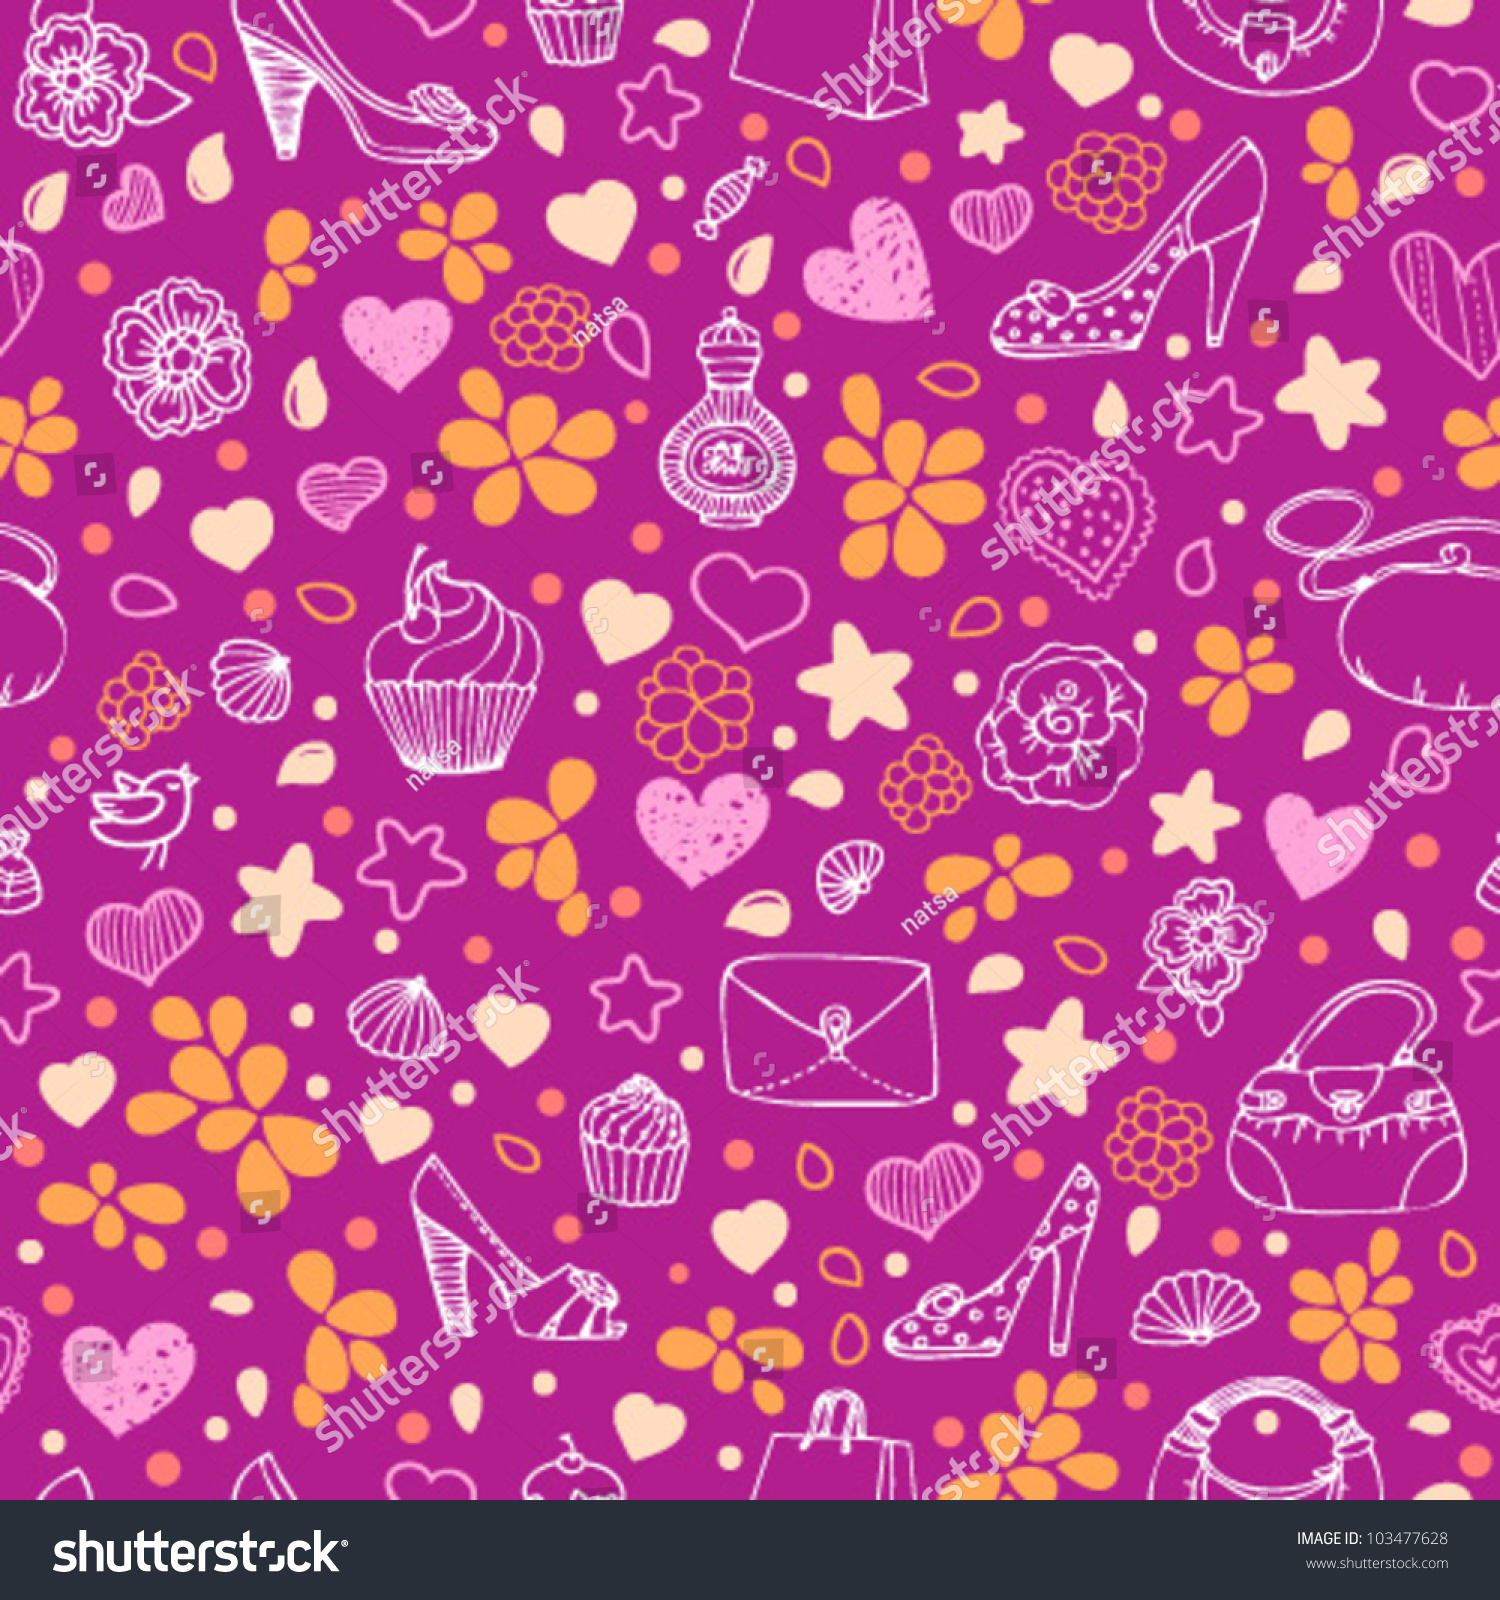 purple girly seamless pattern